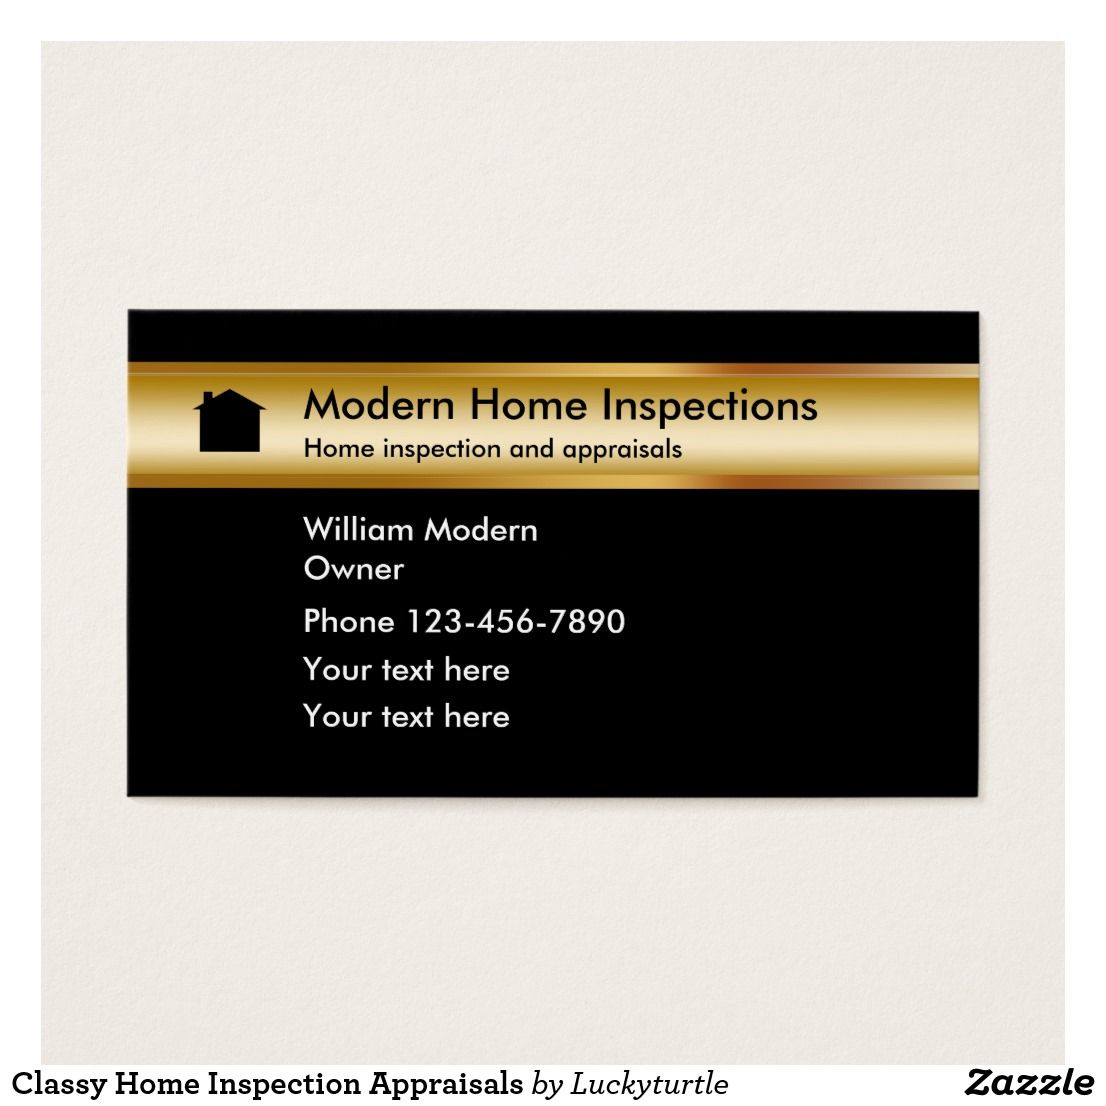 Classy Home Inspection Appraisals Business Card | Home Inspection ...